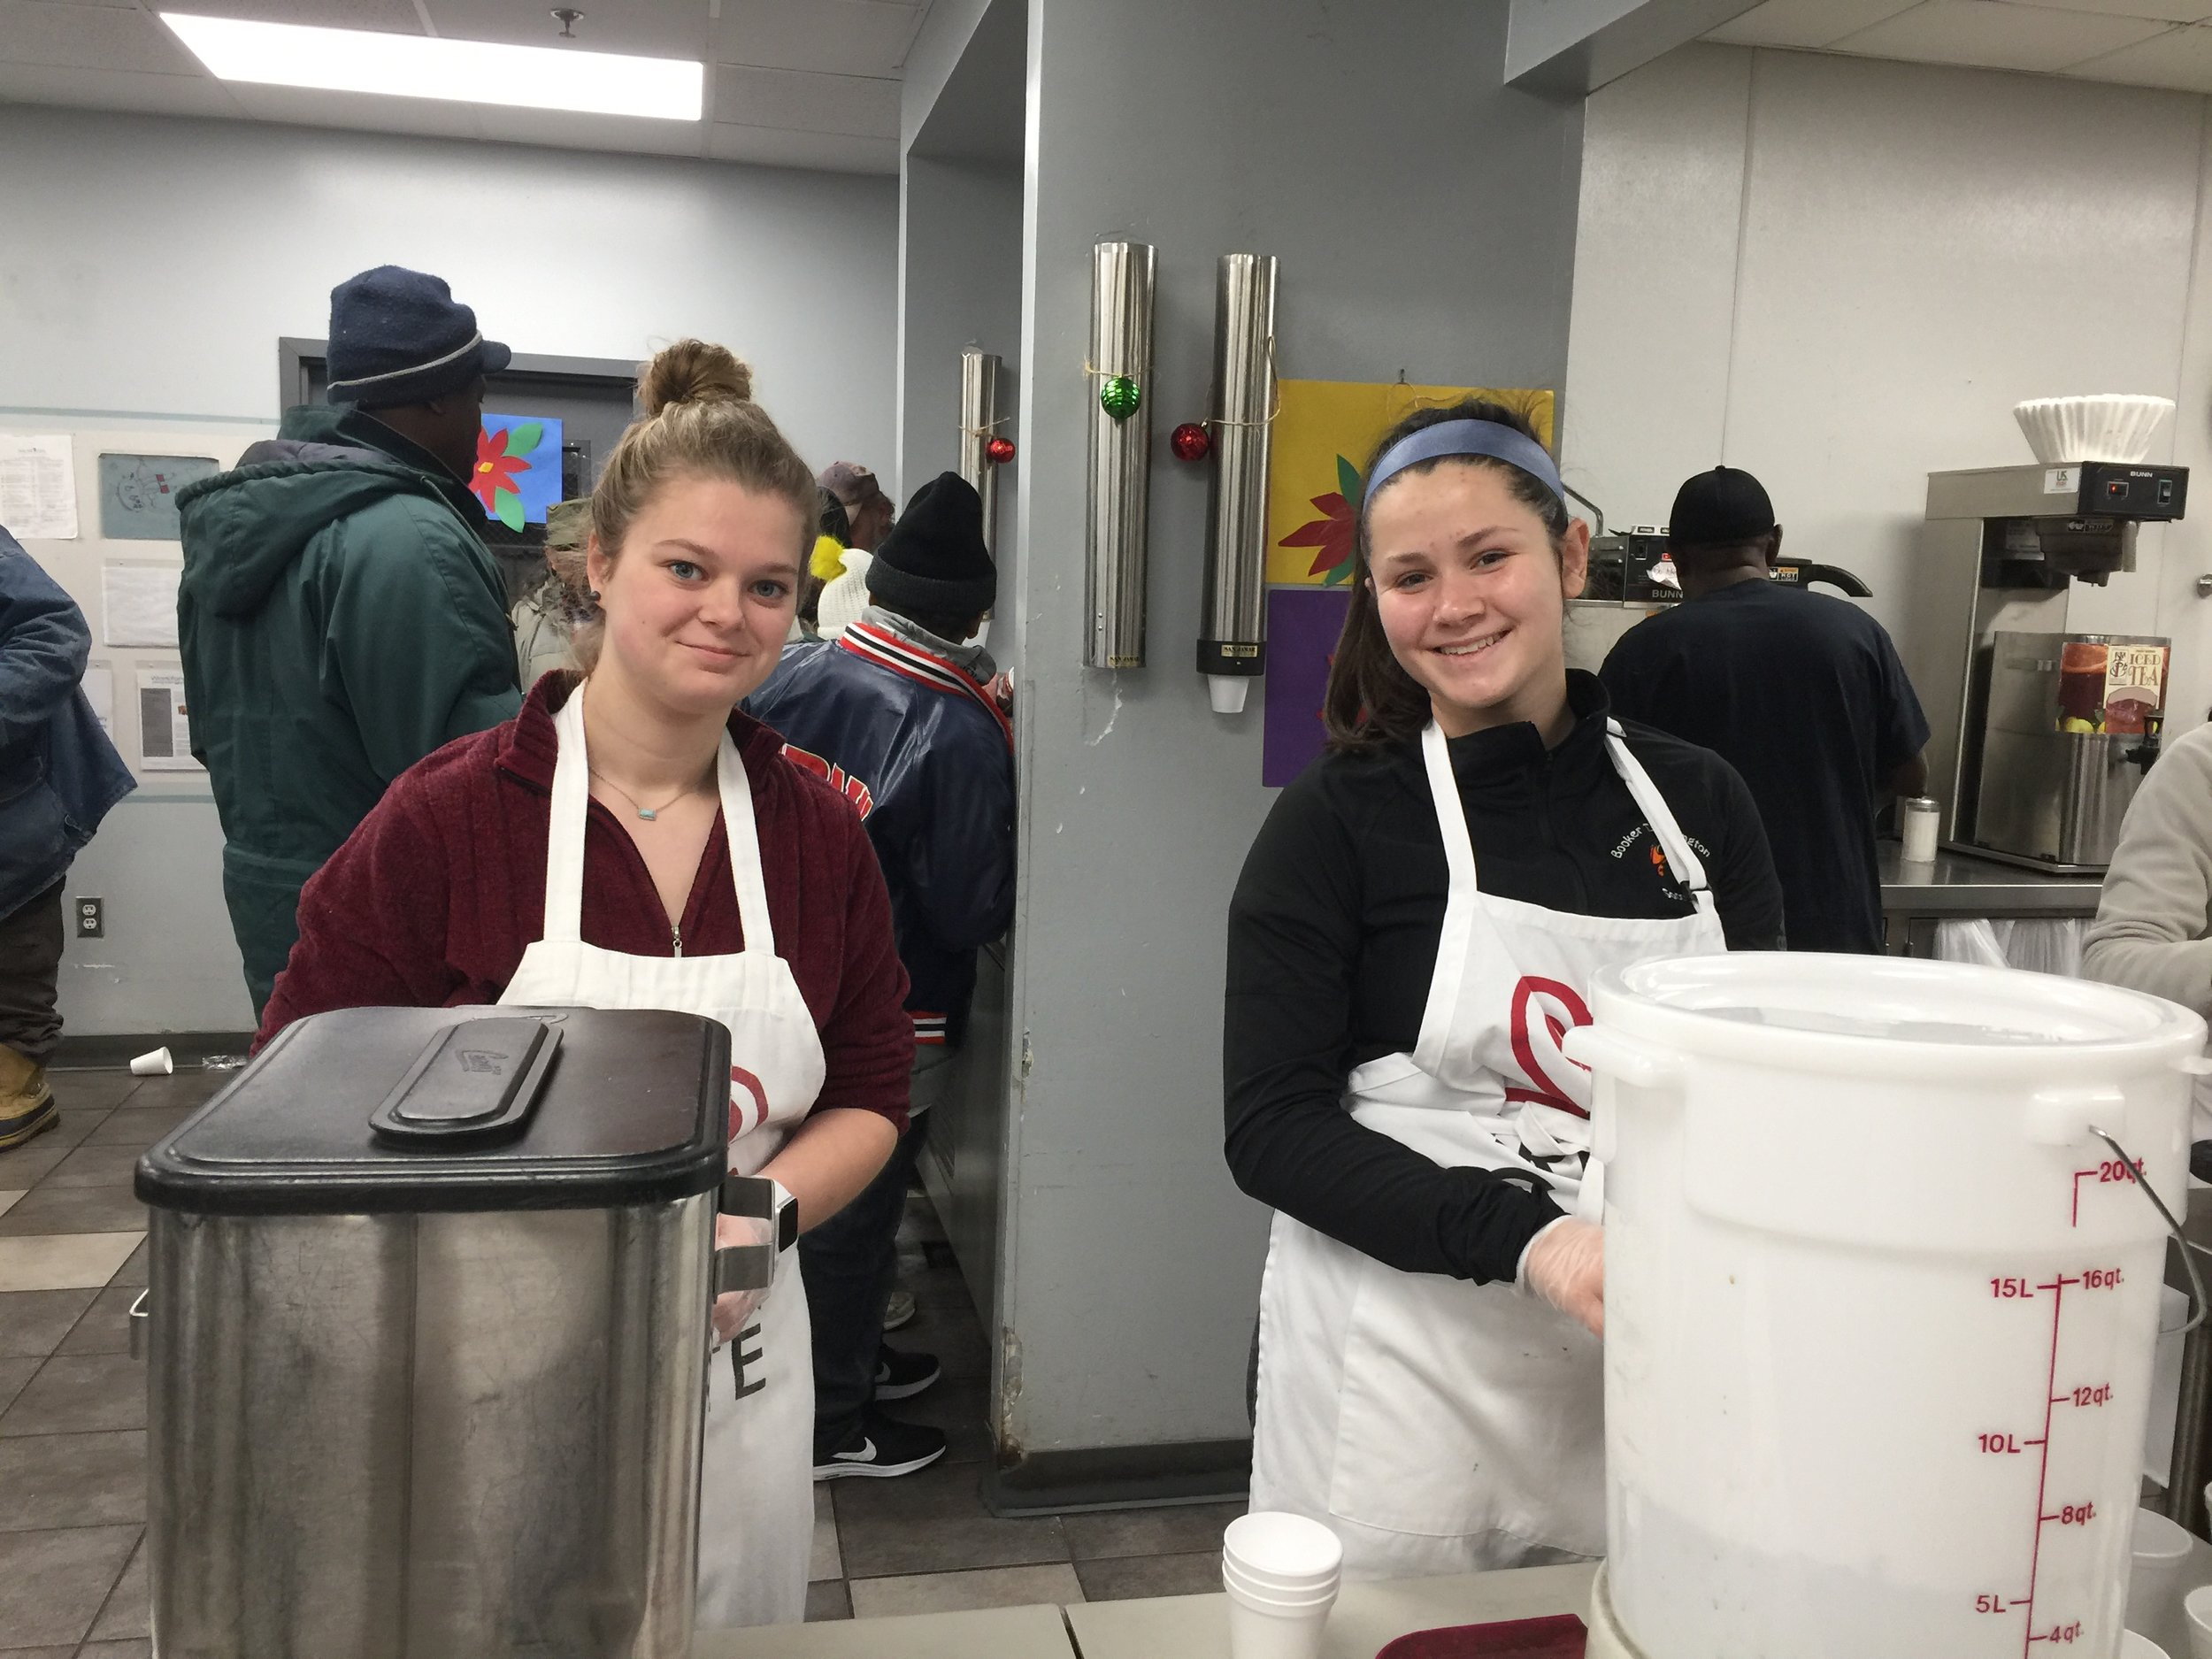 Volunteer - Take a day to serve the hungry of Tulsa. You can help serving our Community Meal, every day from 8:30-10:30AM, or help distribute groceries during our Food Pantry, W/F 11-1PM, Sat 10-12PM.